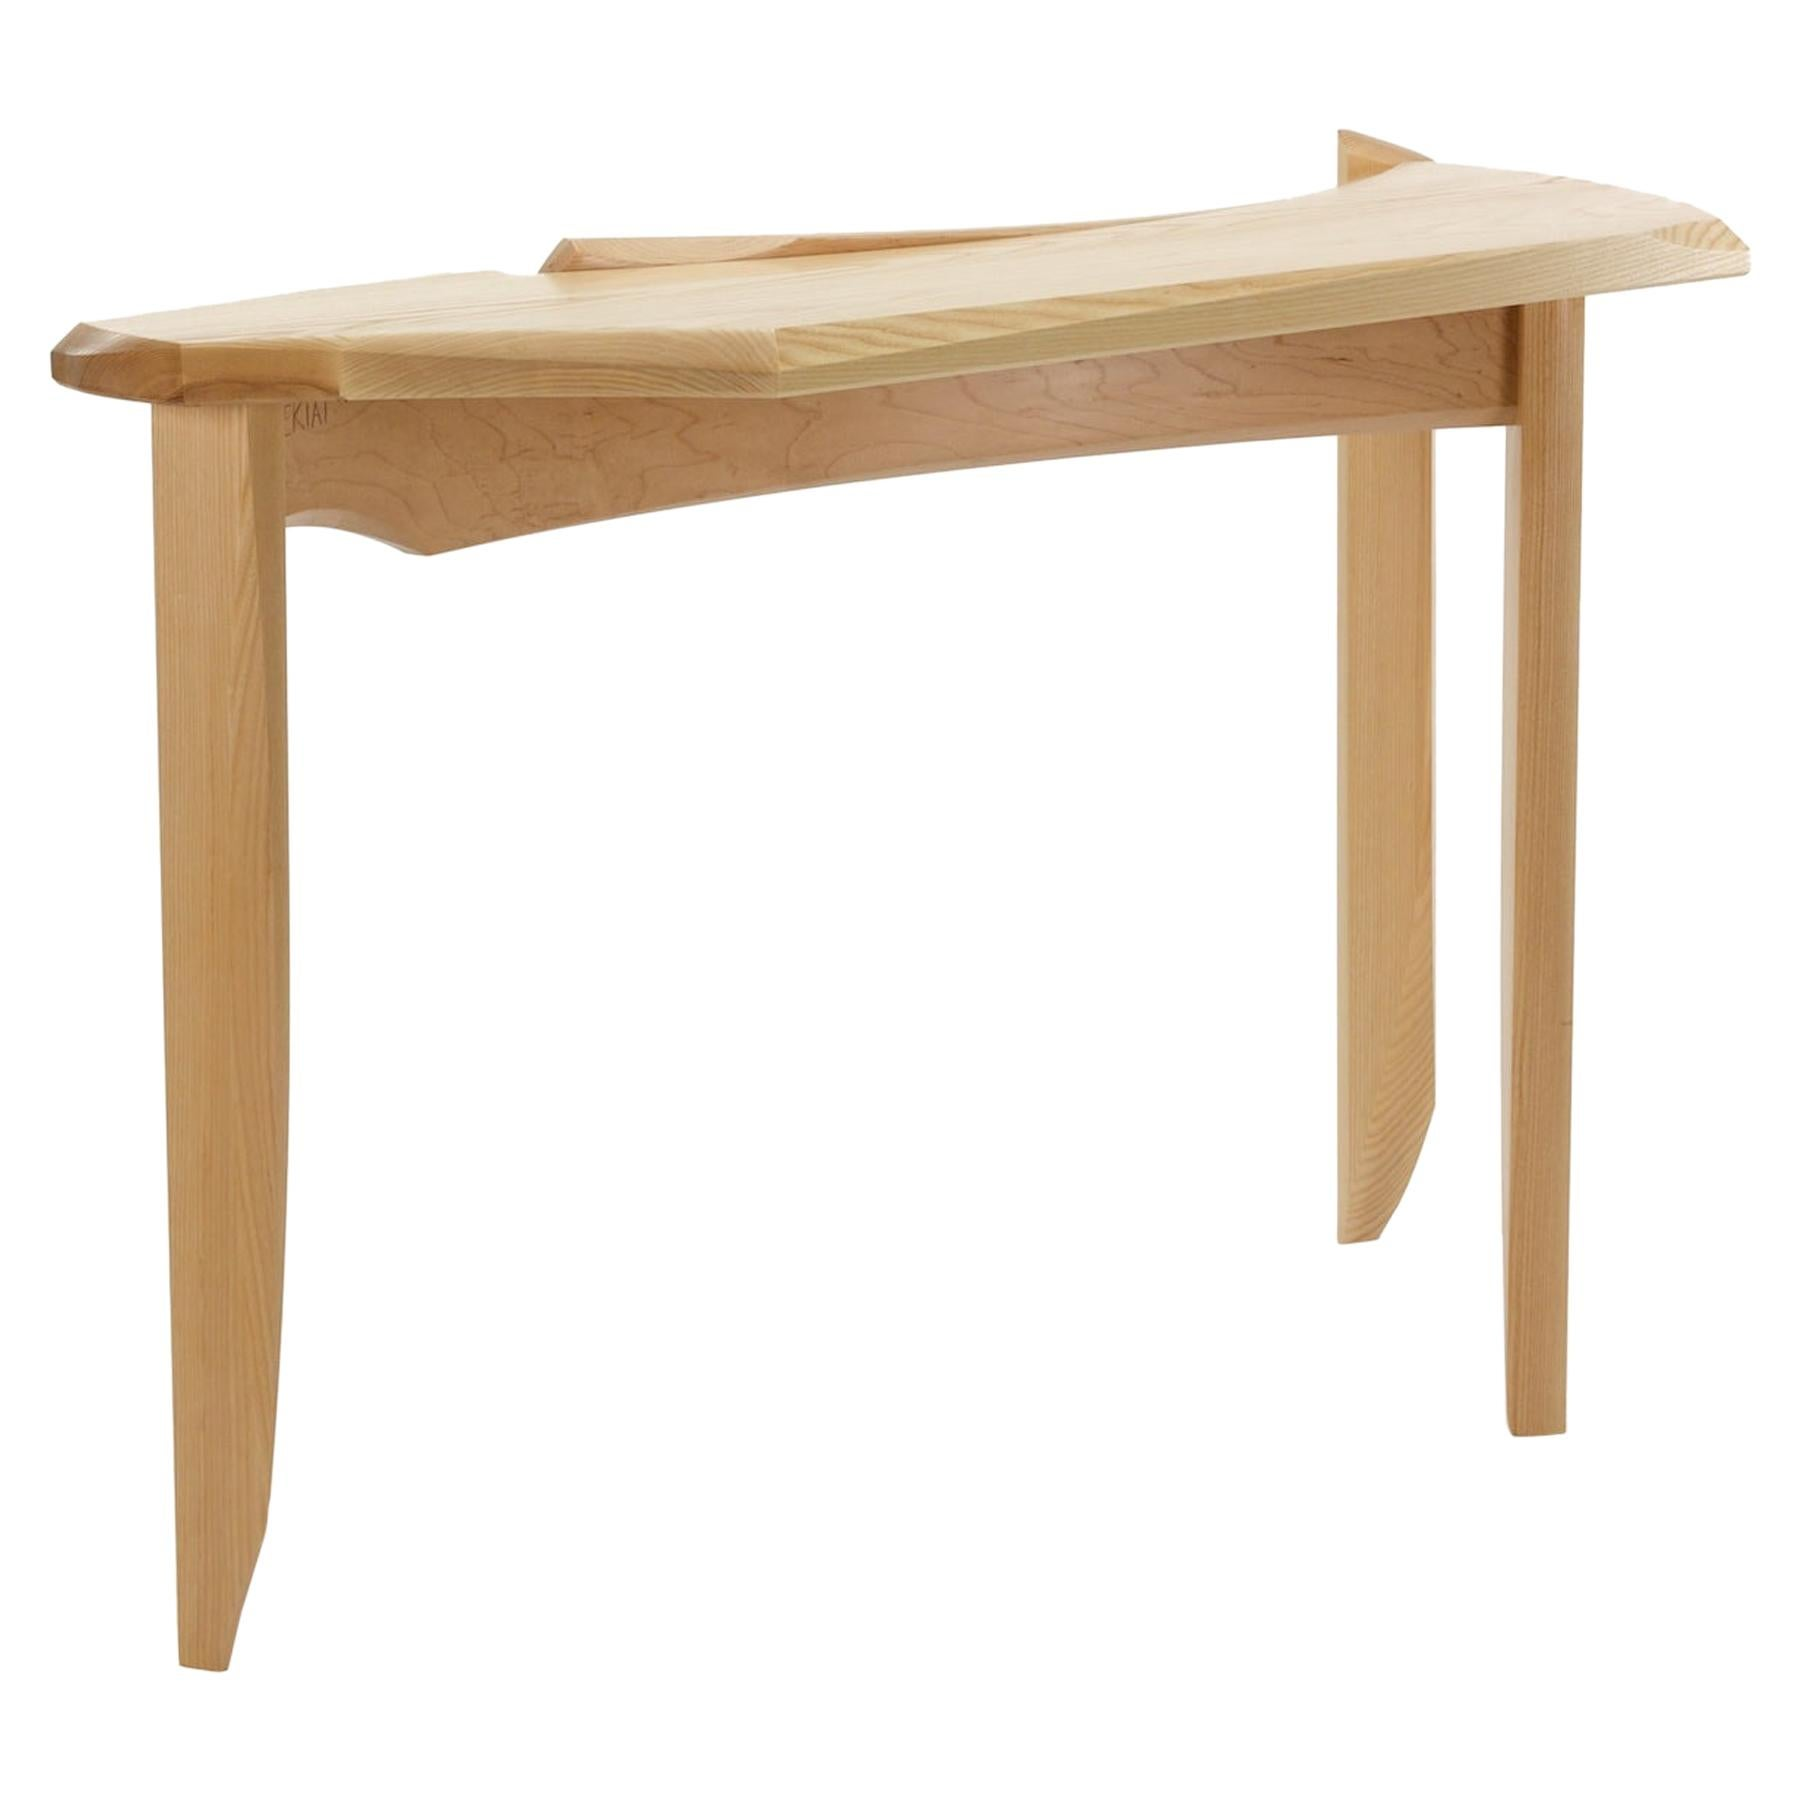 Sculptural Three Legged Console in Bent Maple and Ash by Nico Yektai